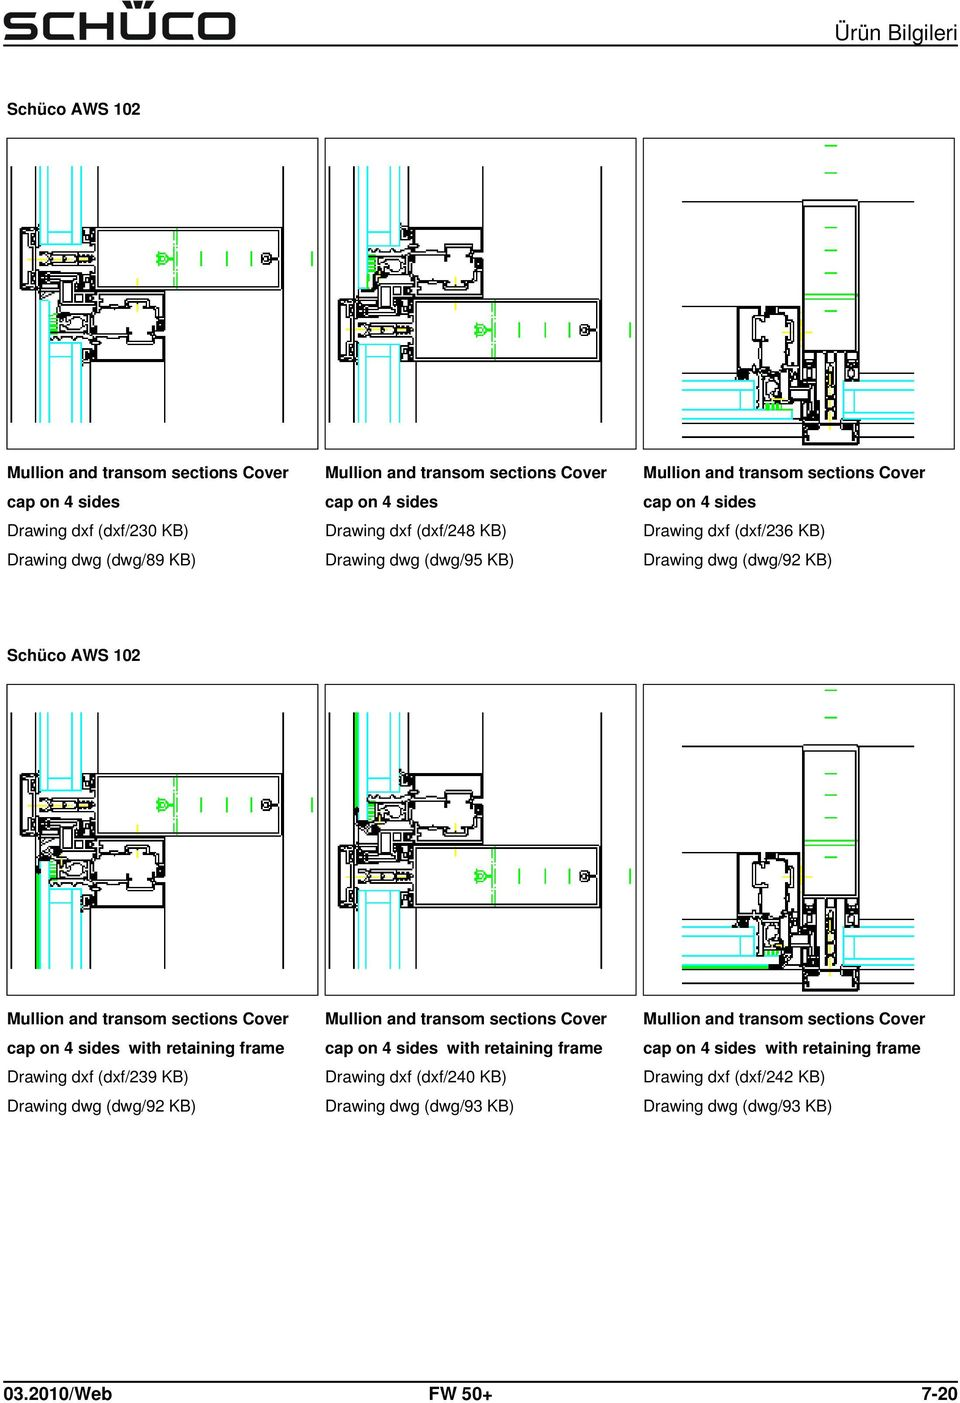 retaining frame Drawing dxf (dxf/239 KB) Drawing dwg (dwg/92 KB) cap on 4 sides with retaining frame Drawing dxf (dxf/240